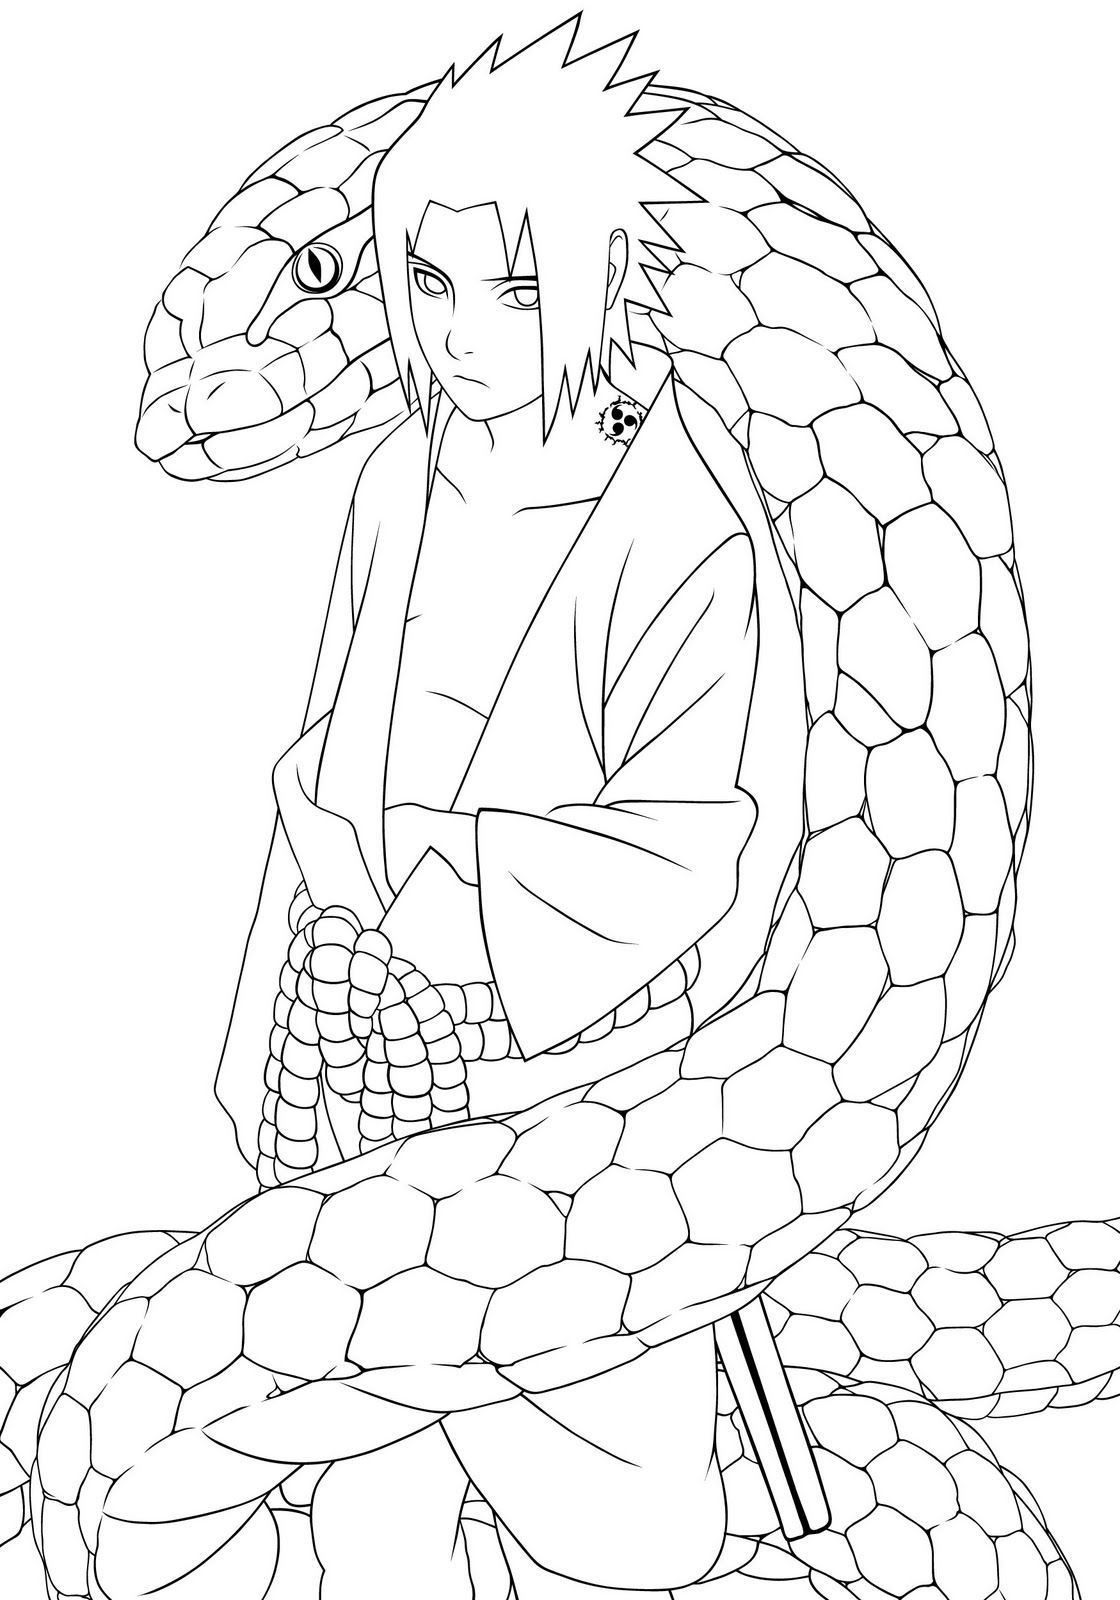 In the story, Sasuke is a member of the Uchiha clan, a